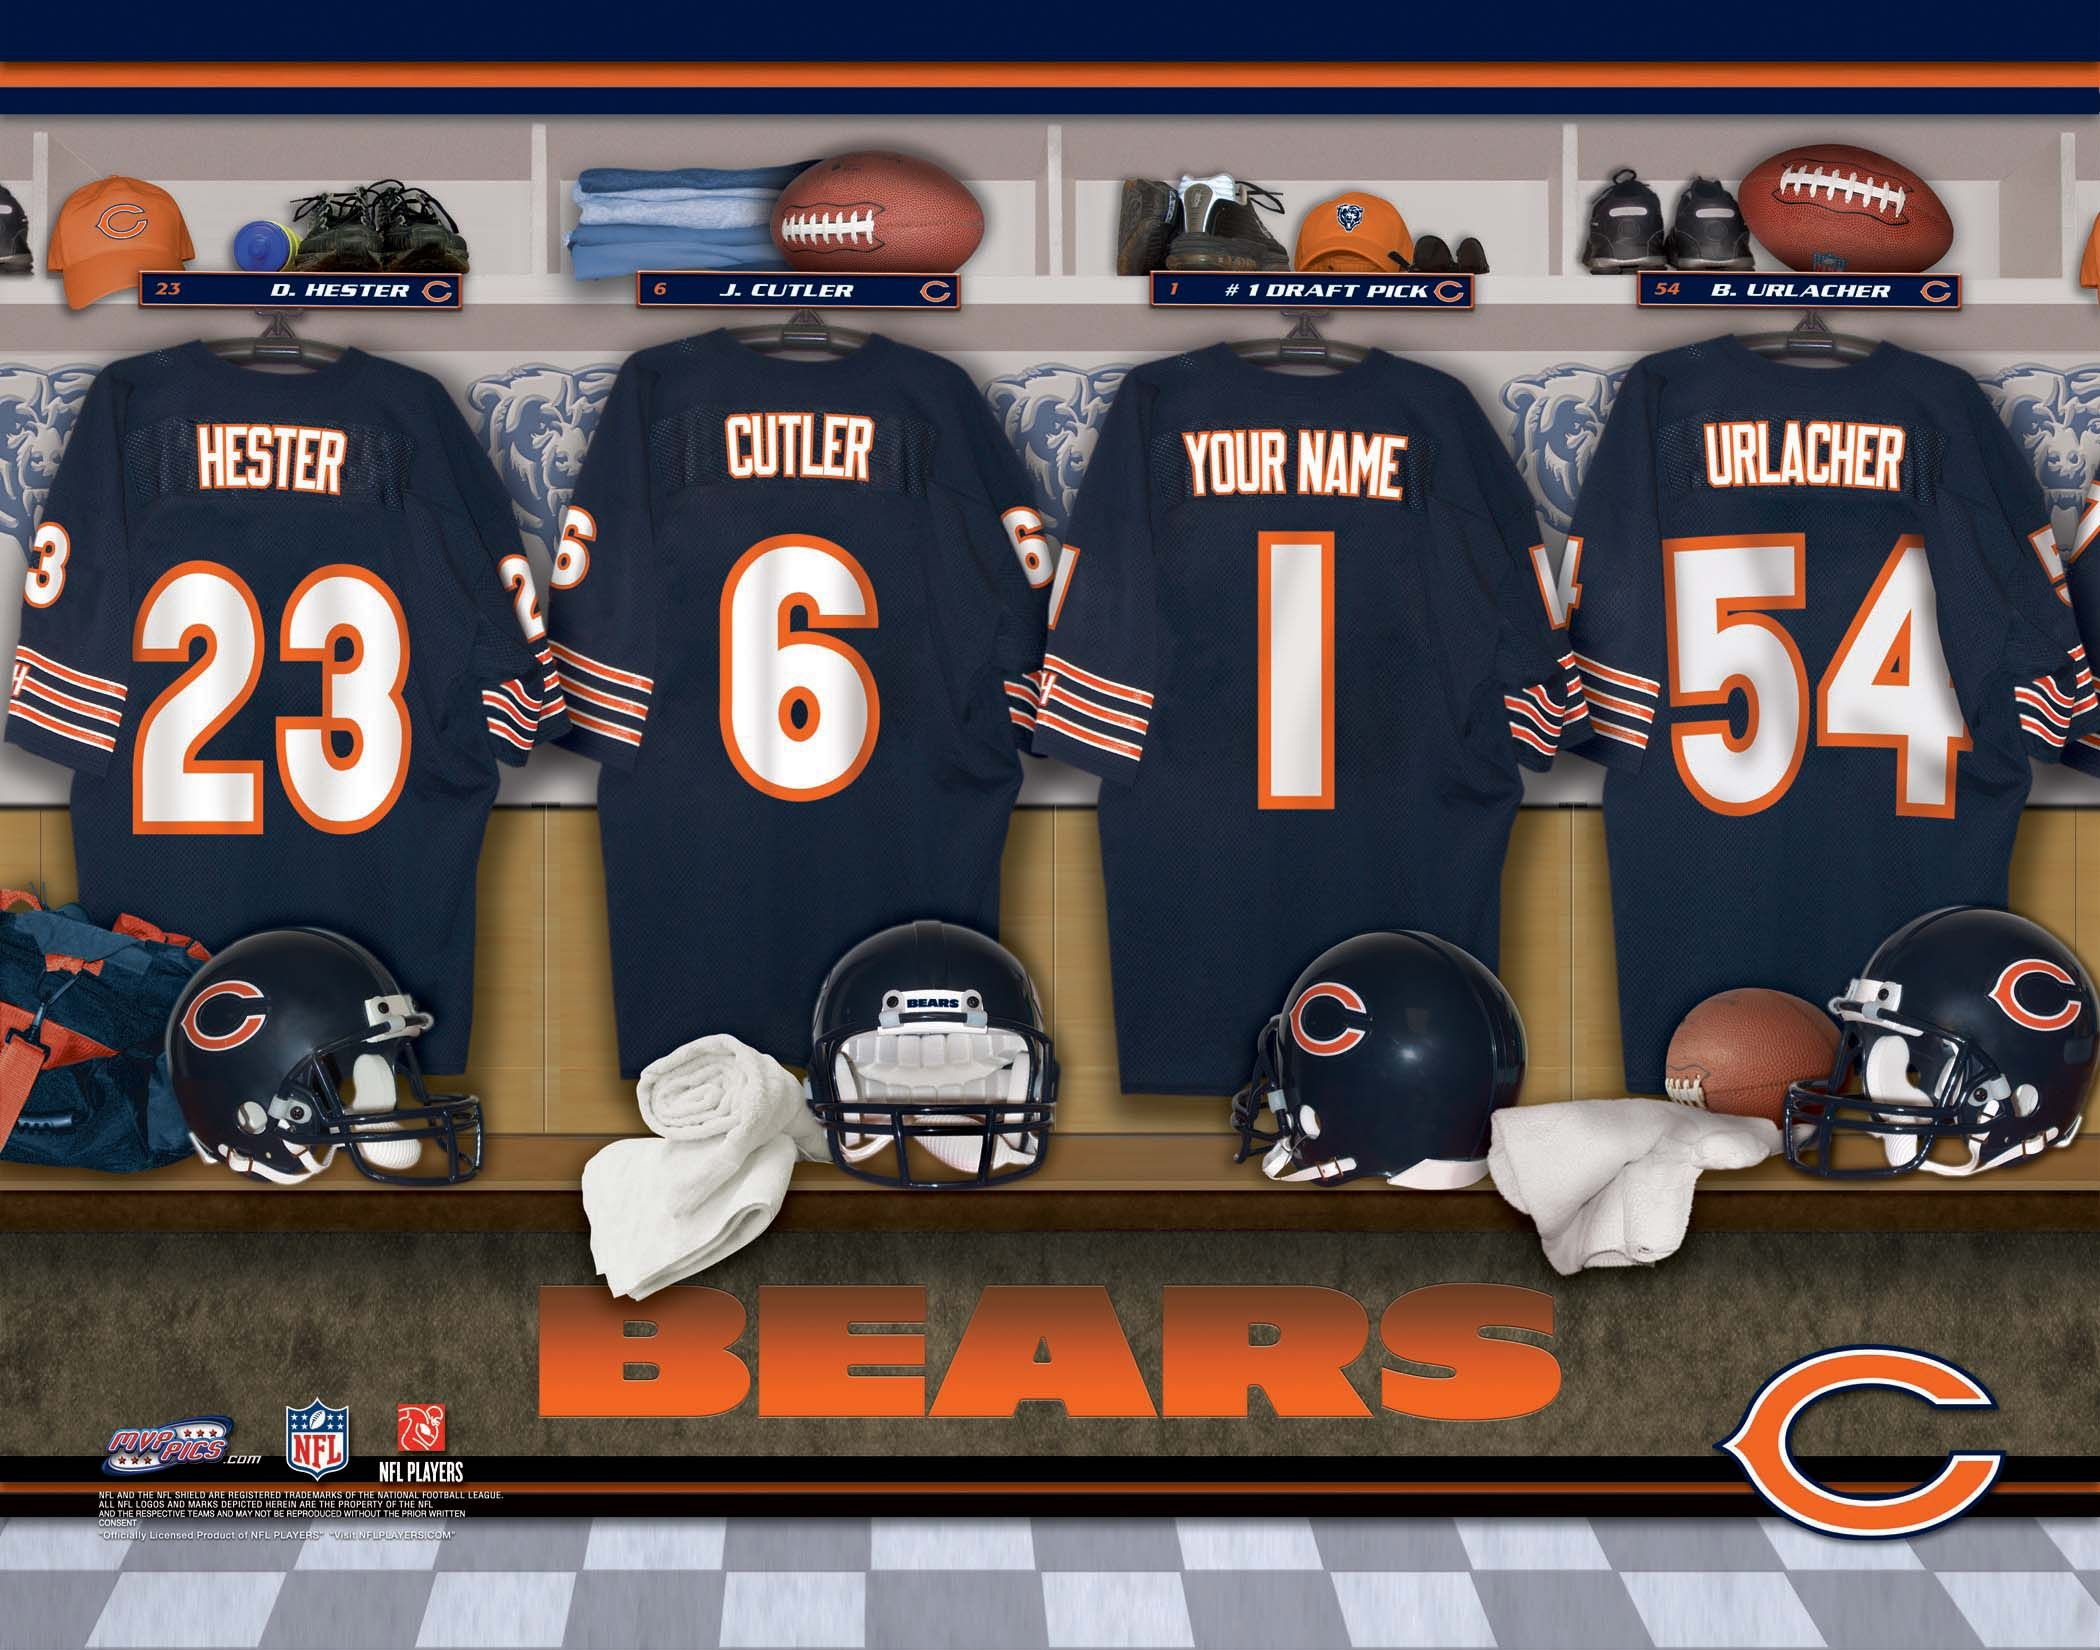 chicago bears pictures | CHICAGO BEARS NFL LOCKER ROOM PRINT ...